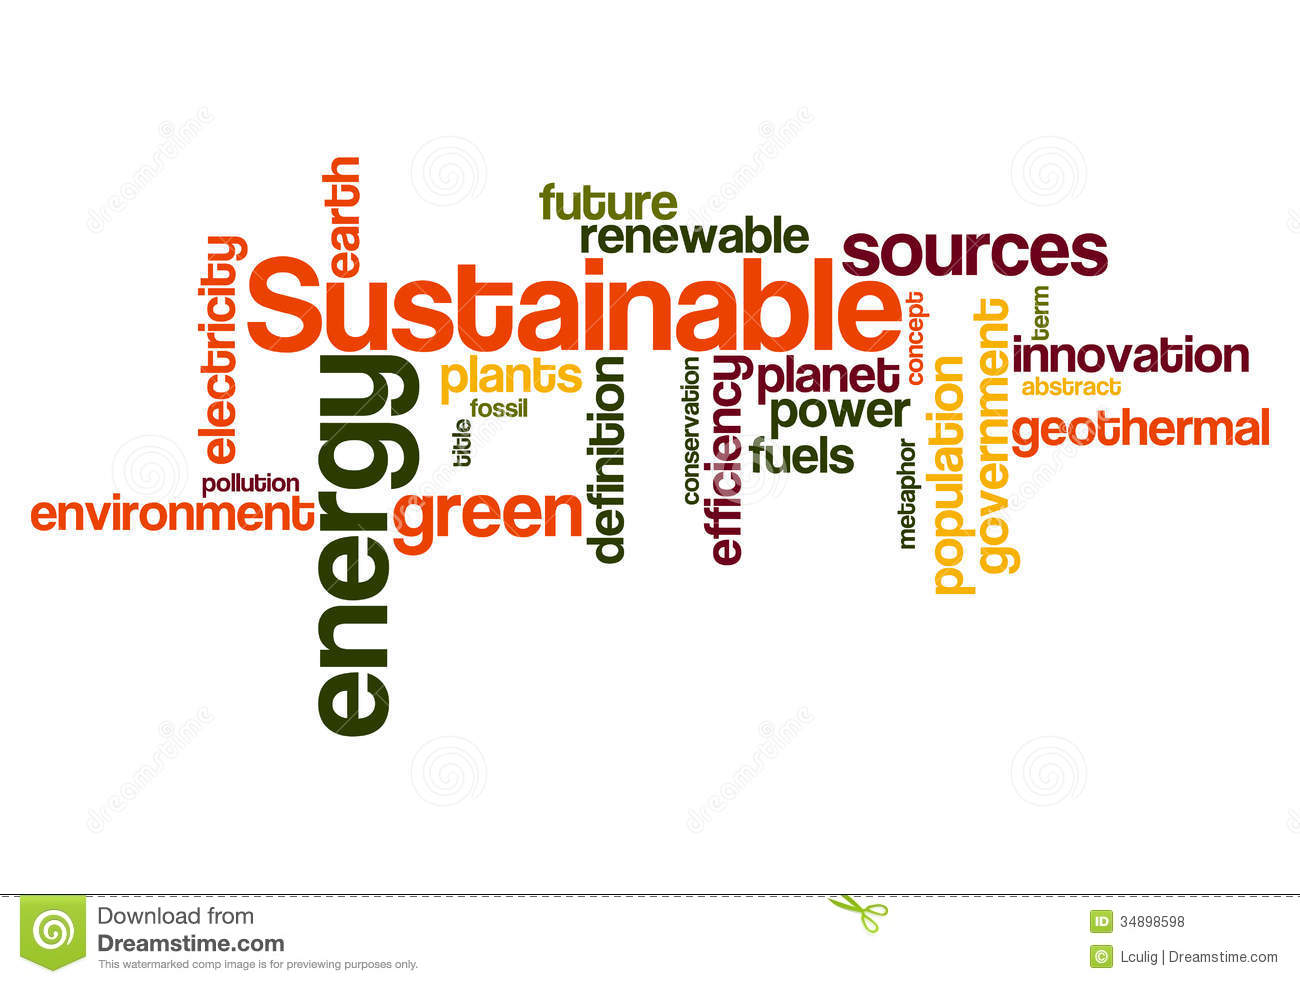 concept definition map with Royalty Free Stock Photos Sustainable Green Energy Concept Word Cloud Background White Image34898598 on Science Tattoos in addition Living With Peptic Ulcer Disease as well Adse Configuration Management In The Supply Chain V1 Final in addition Vinpearl Safari Open Zoo besides Smart Cities.